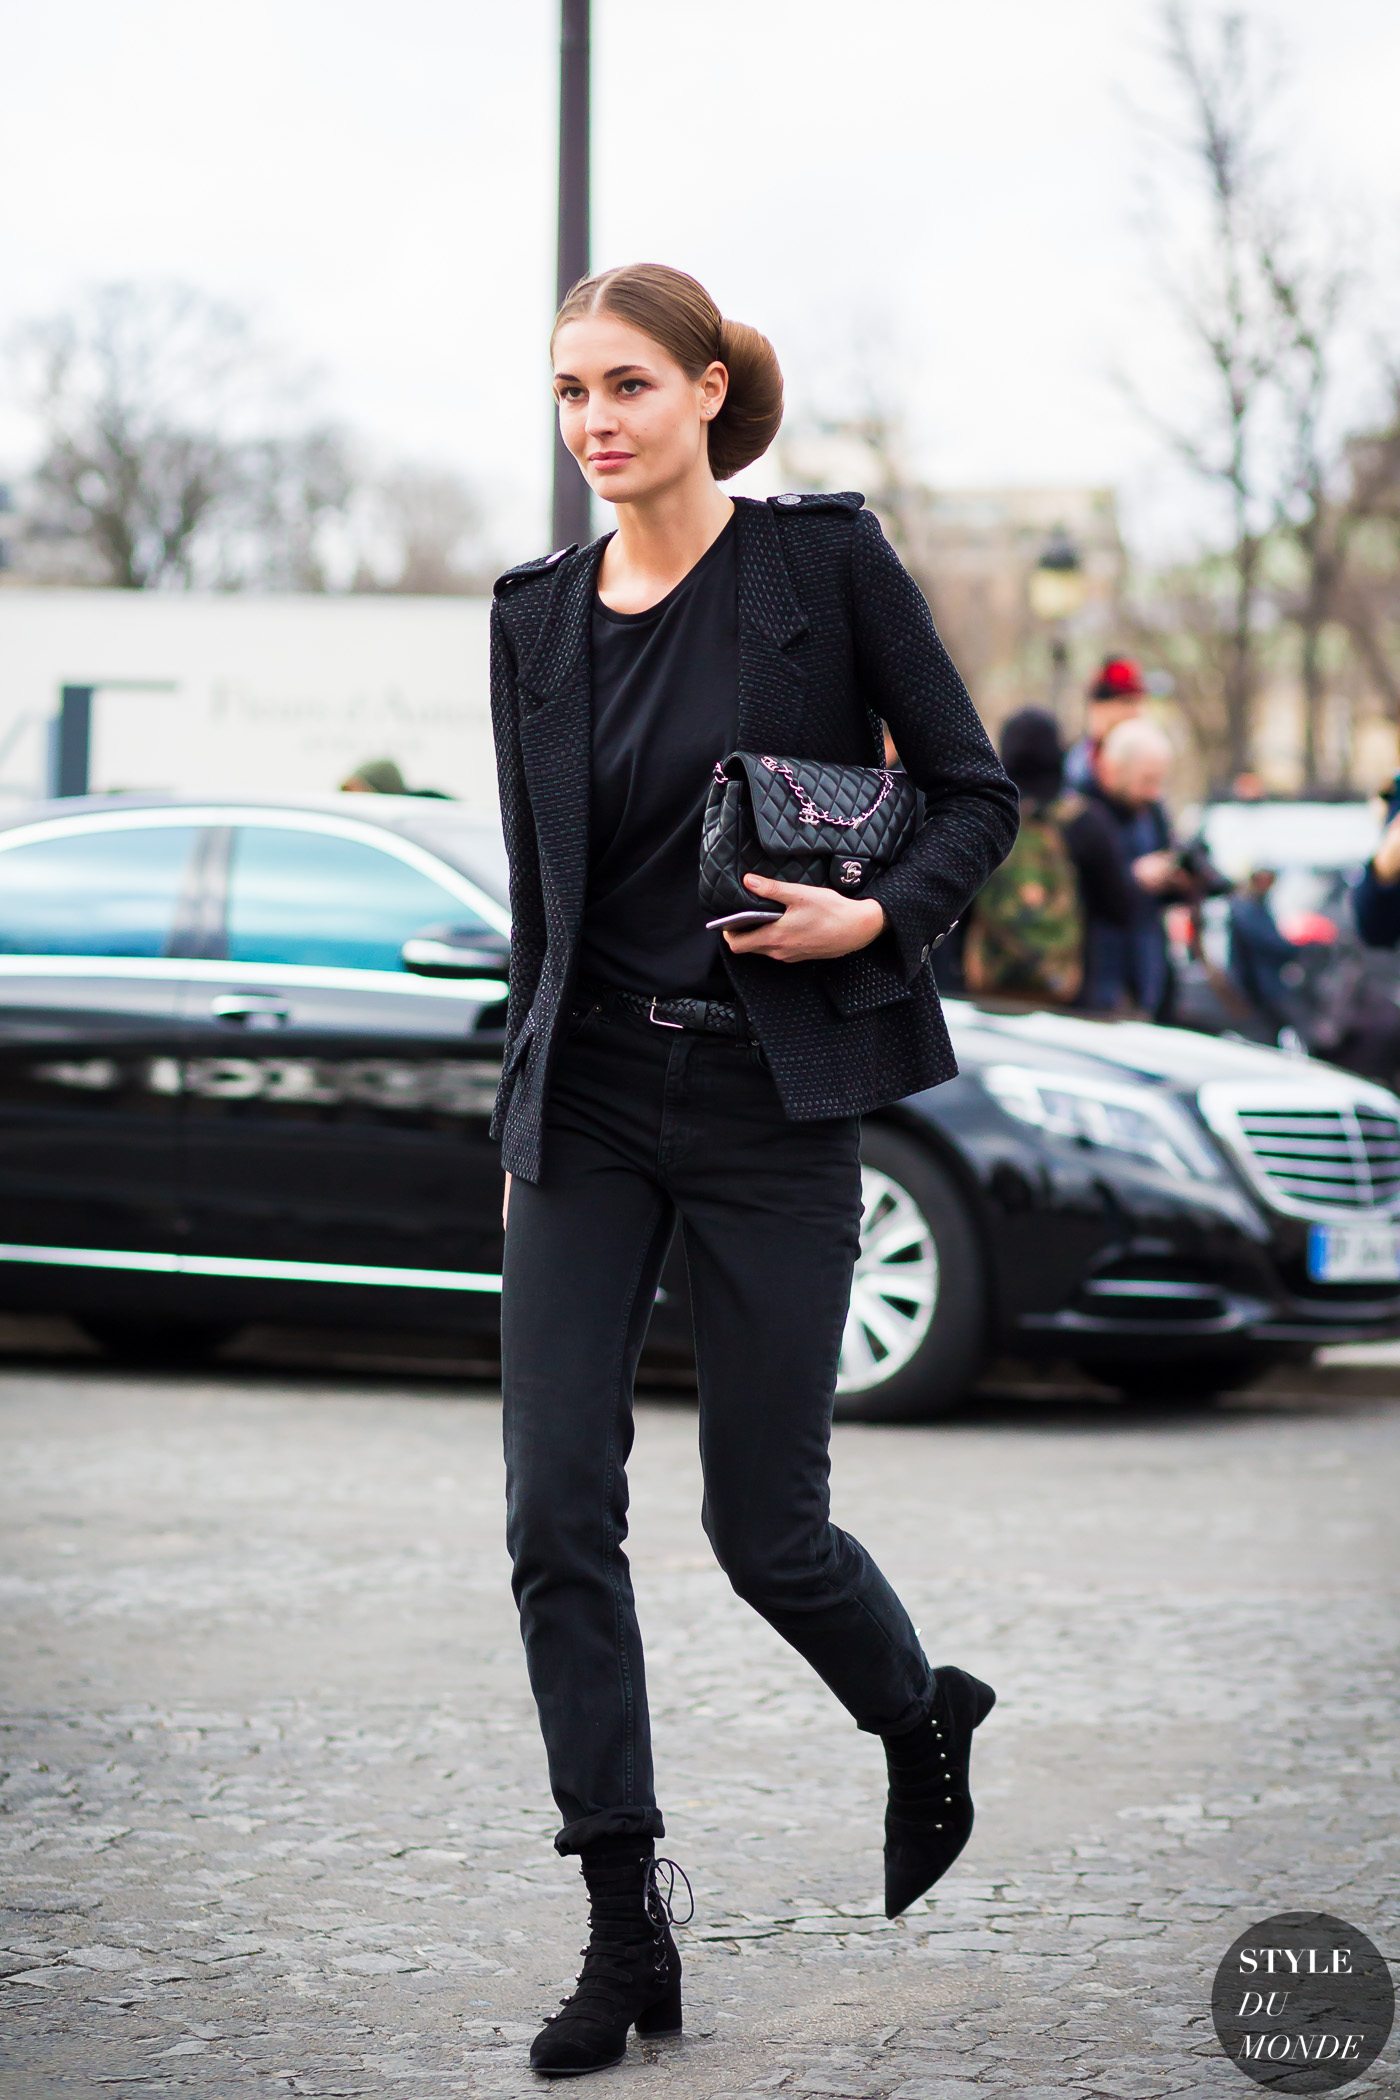 Nadja Bender Street Style Street Fashion Streetsnaps by STYLEDUMONDE Street Style Fashion Photography